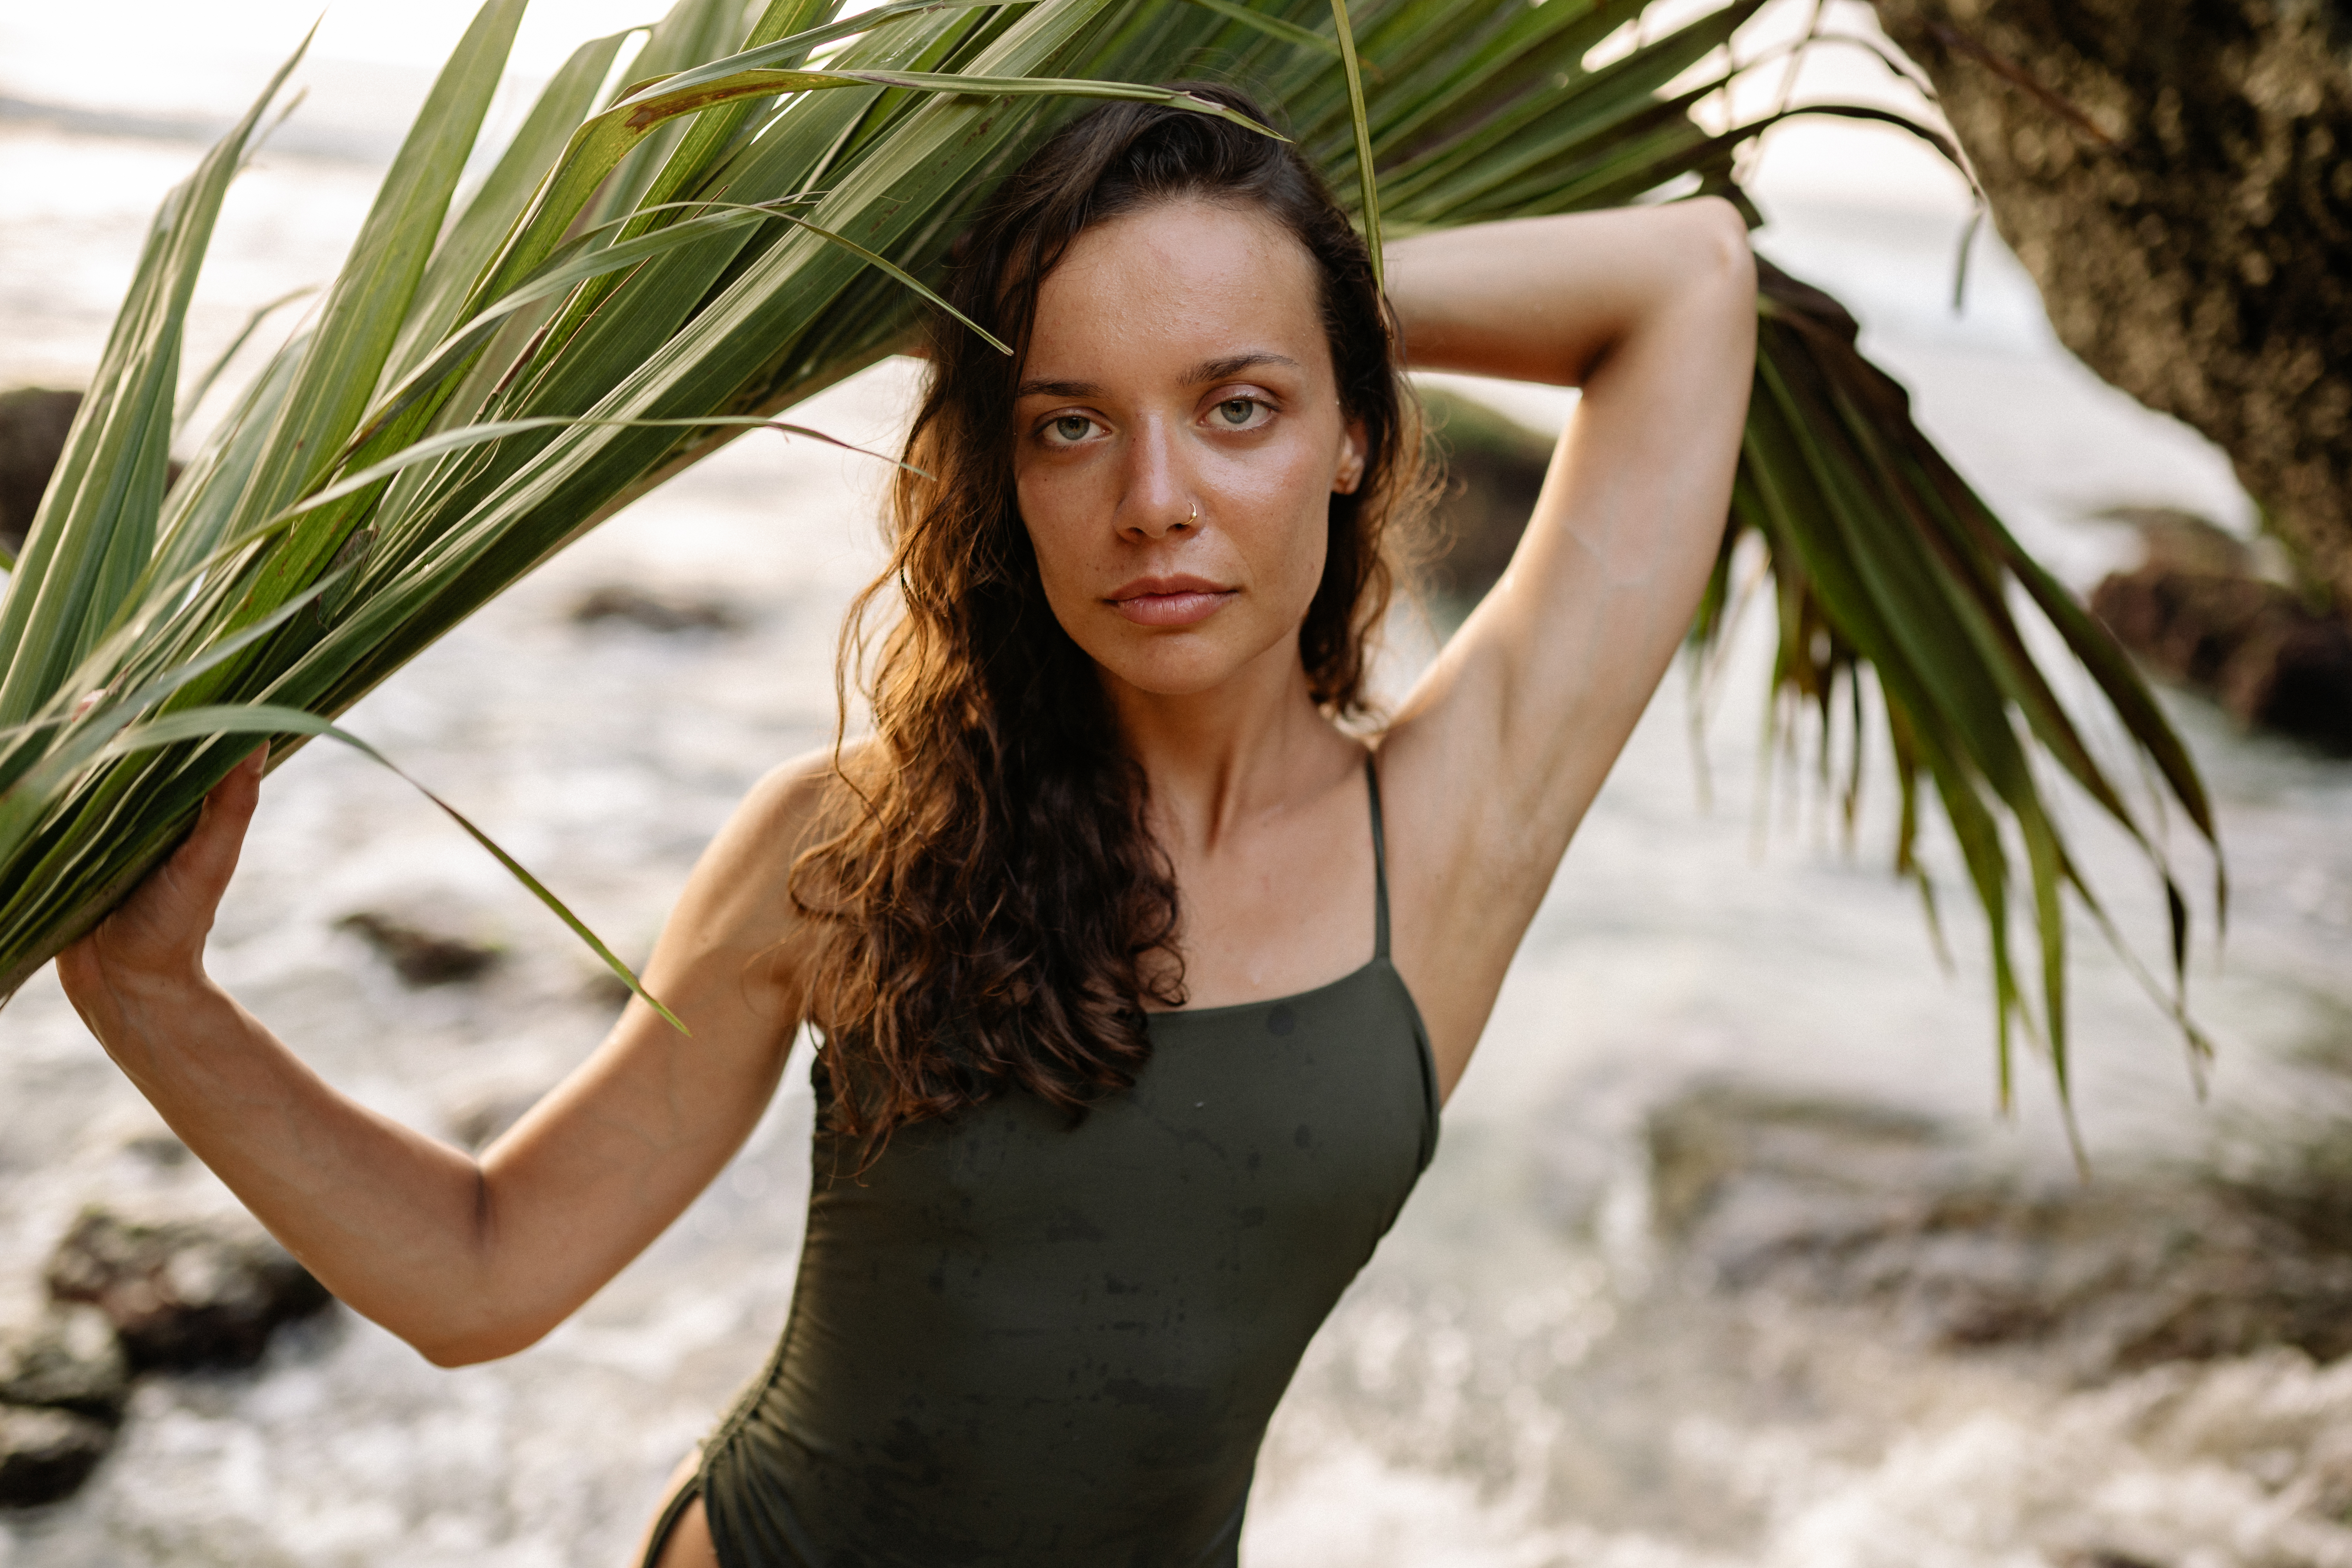 confident woman in swimsuit with palm leaf looking at camera